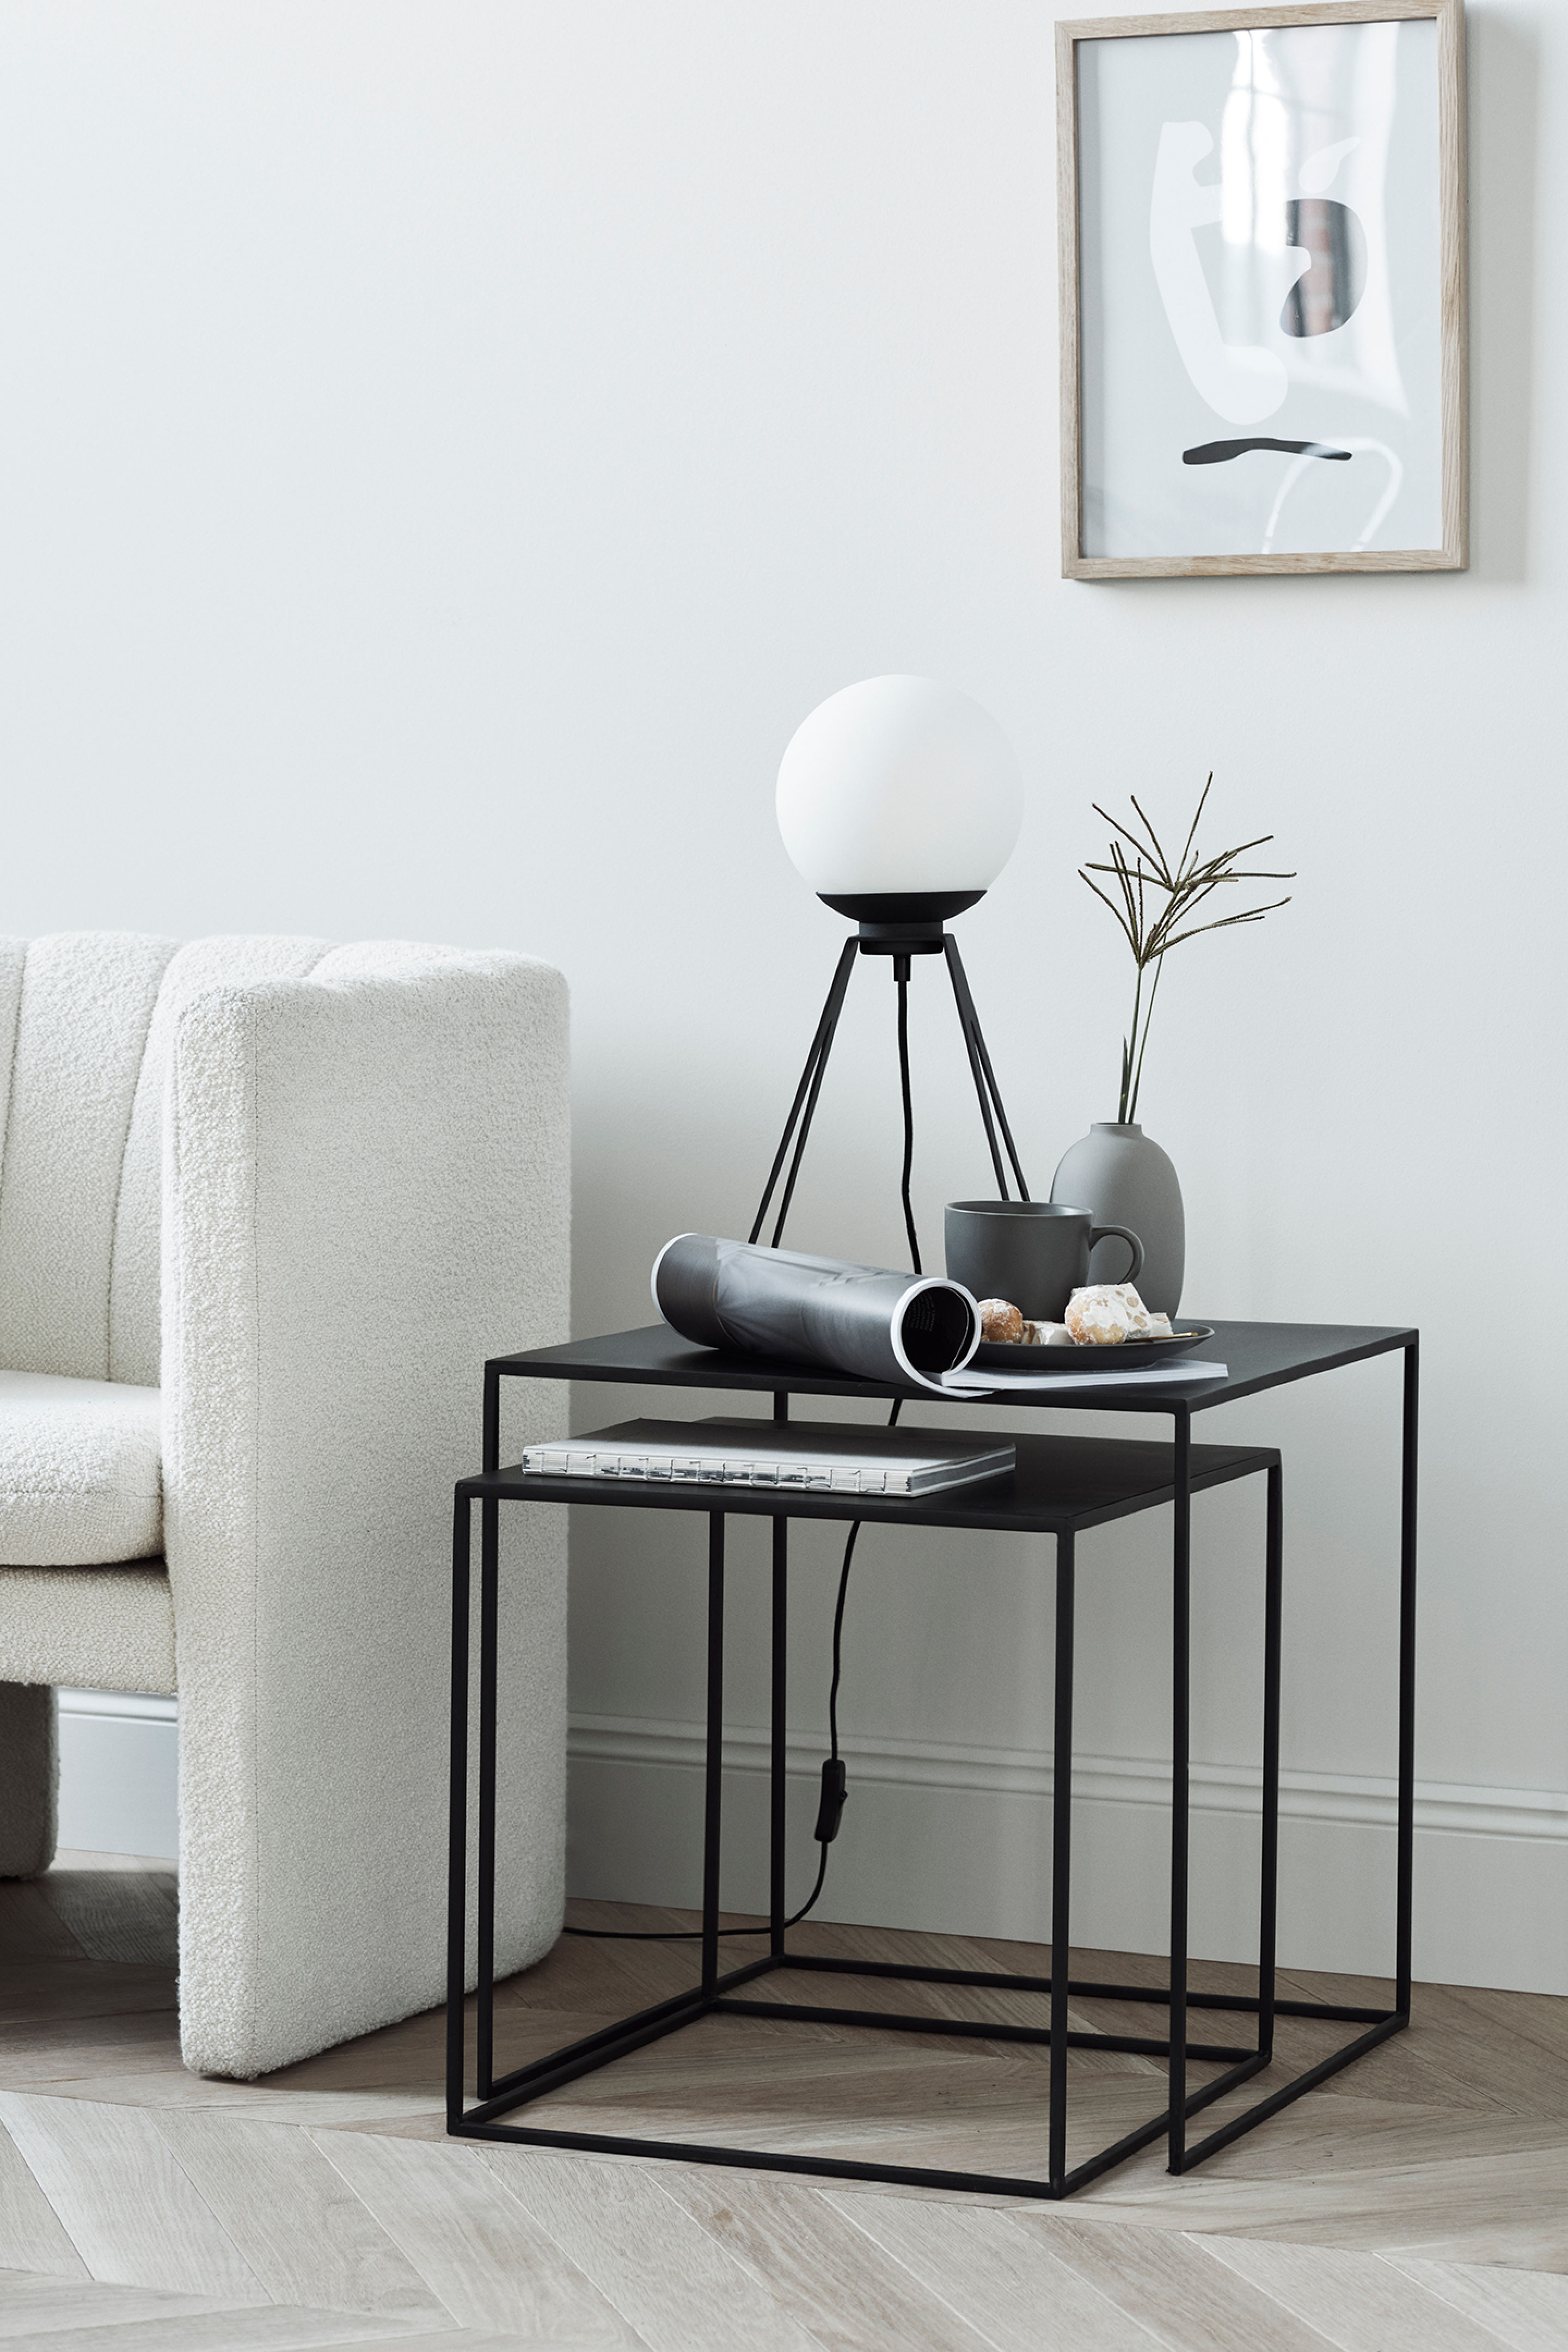 H&M Home collection - table lamp